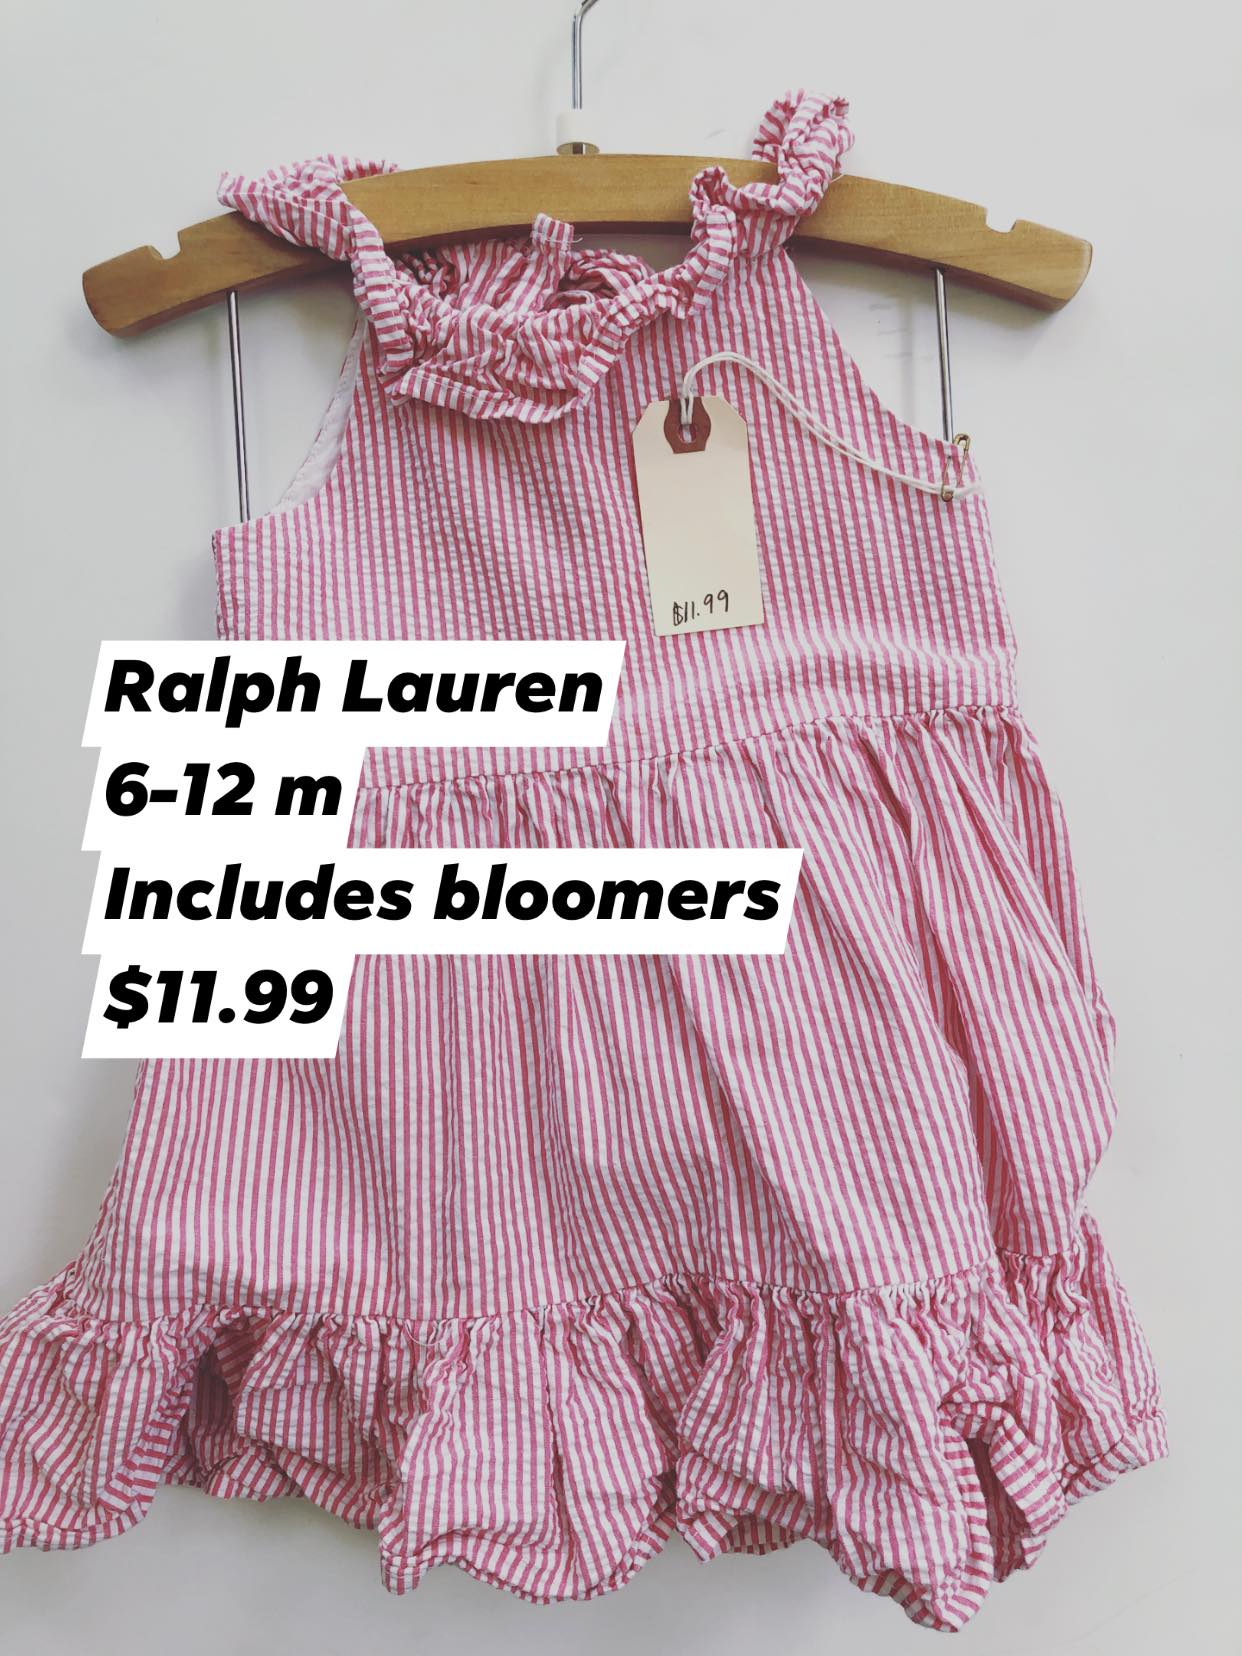 Resale 6-12 m Ralph Lauren Seersucker Dress